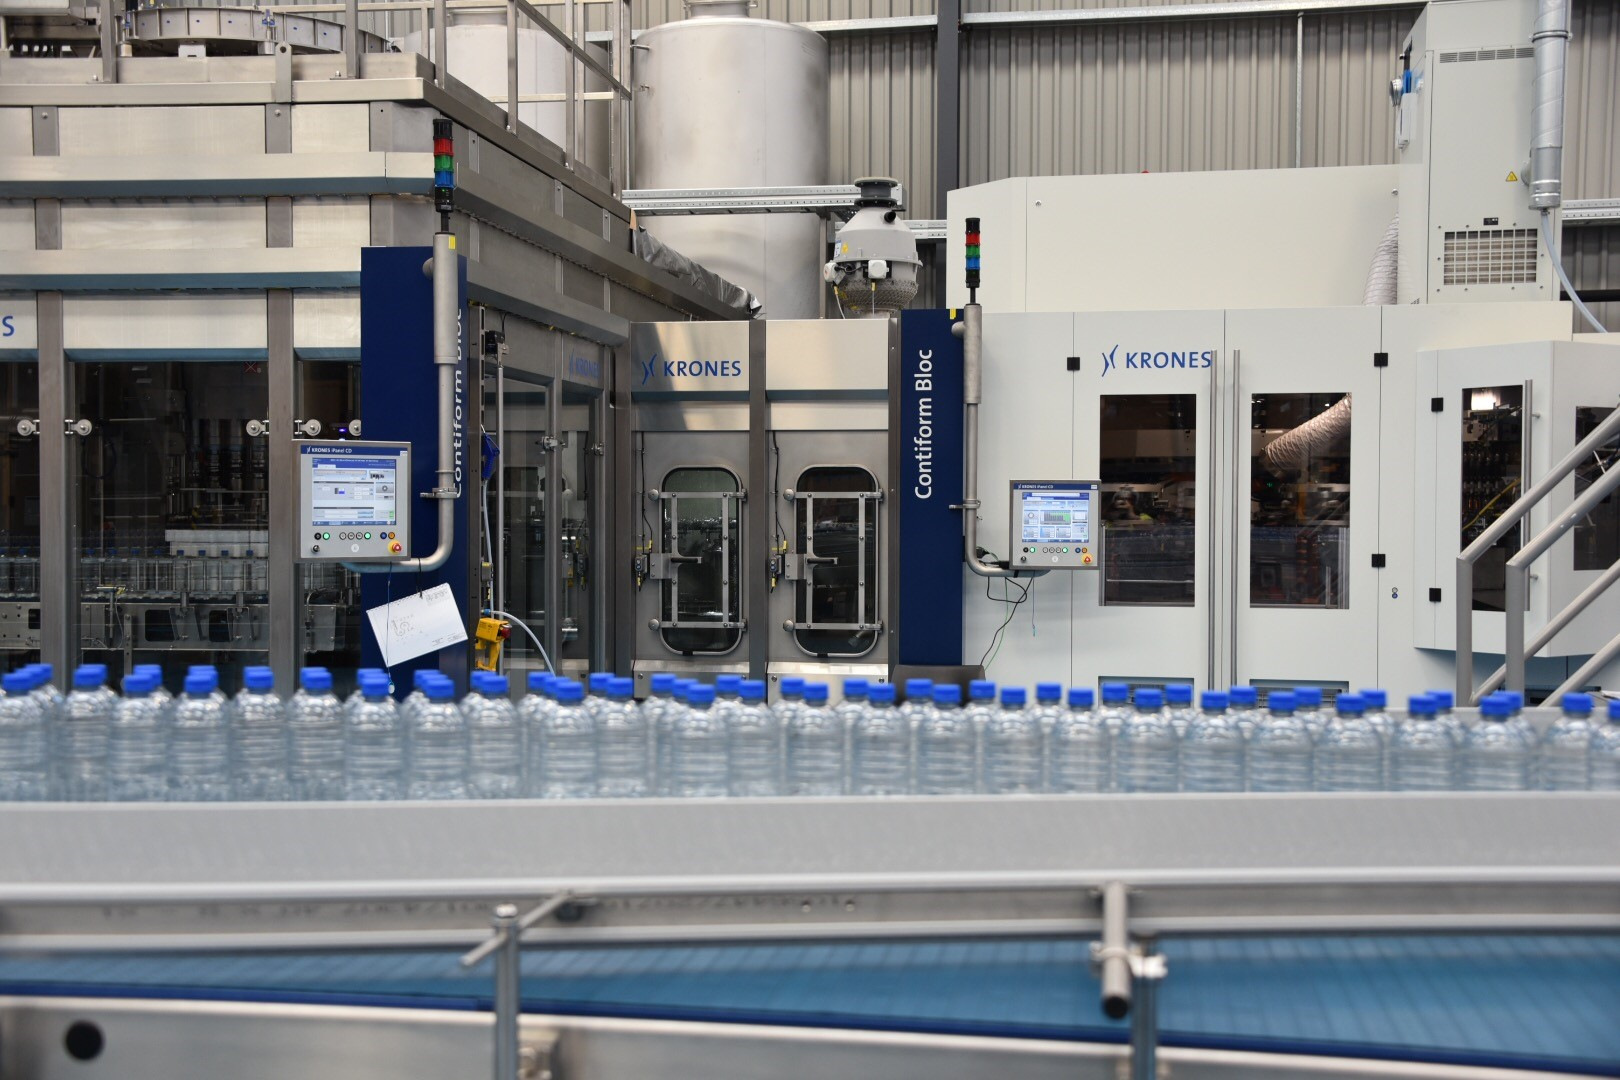 Nz Largest Bottled Water Production Line Opens